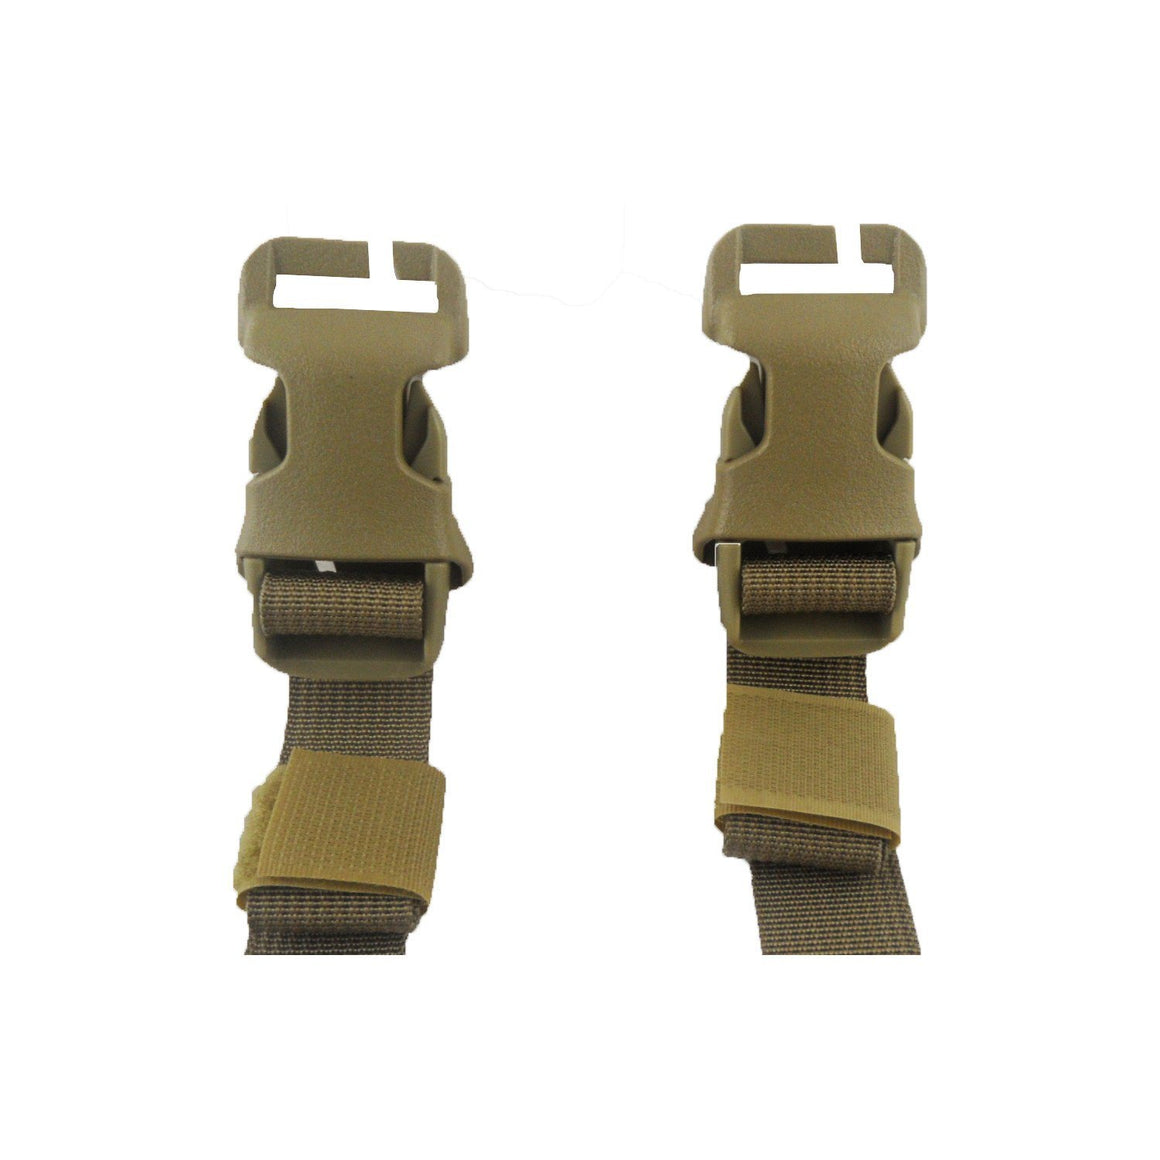 8042 hydration attach straps-coyote tan 3